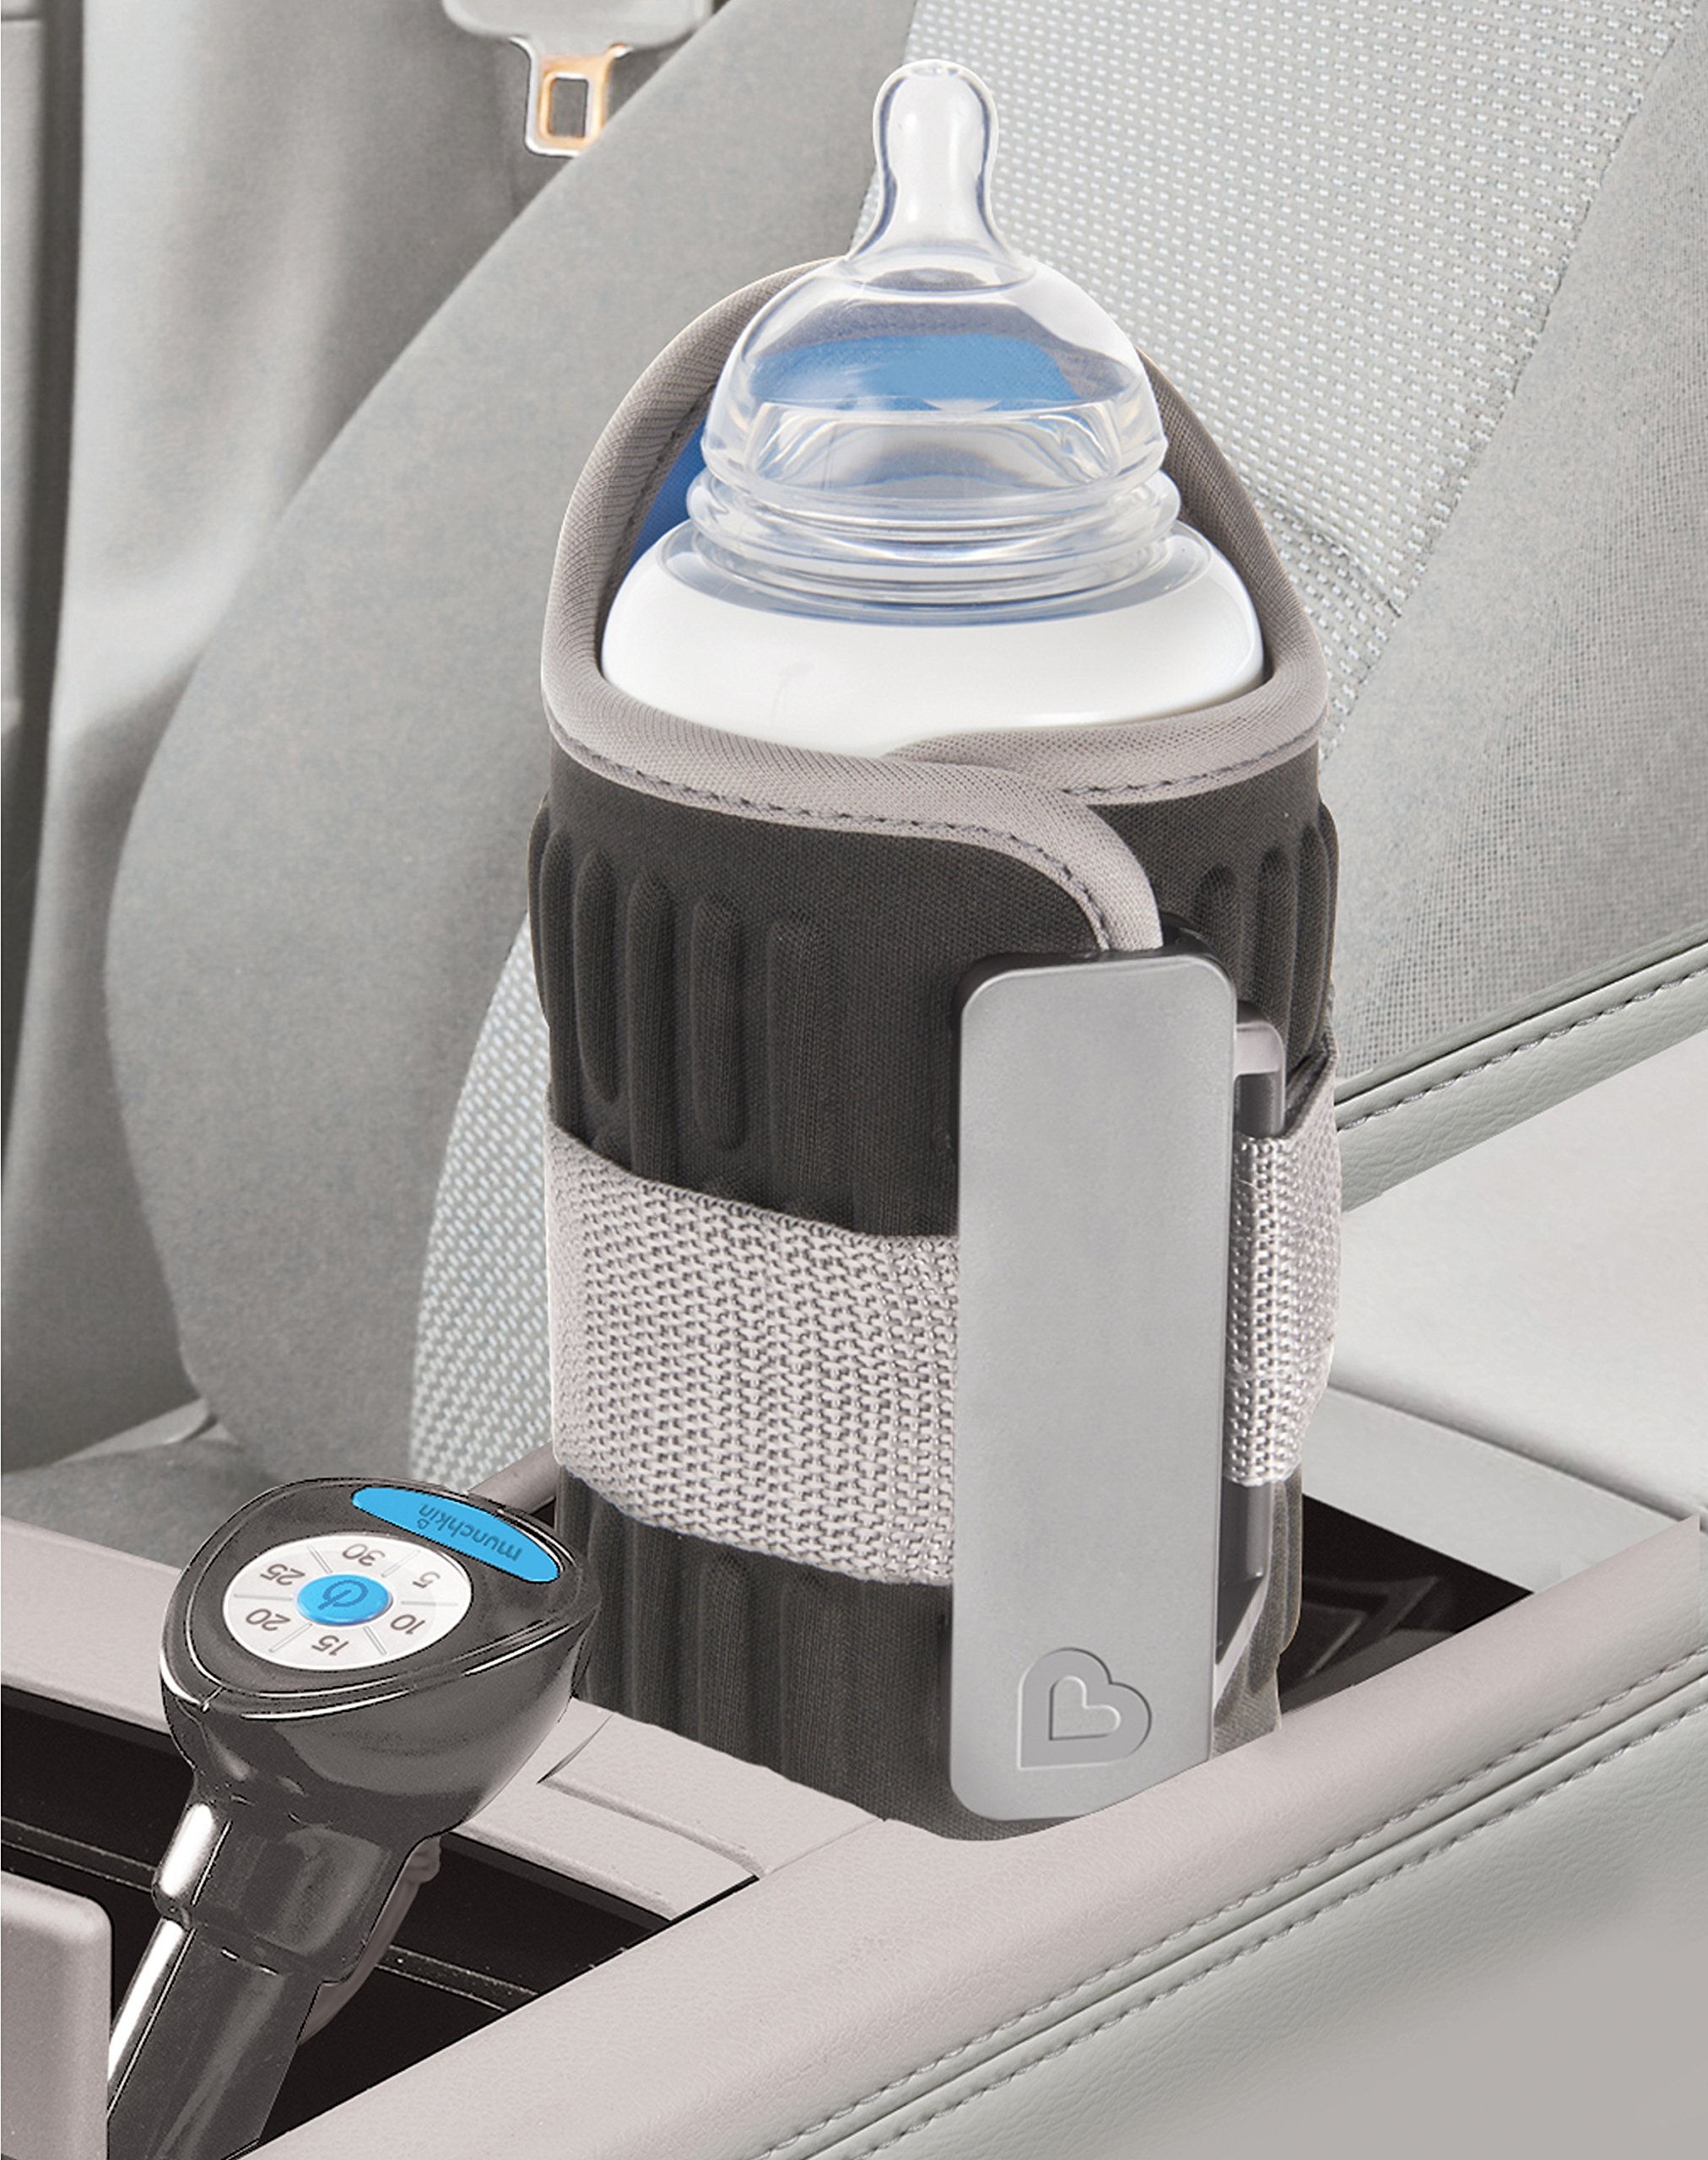 Munchkin Travel Car Baby Bottle Warmer, Grey by Munchkin (Image #4)